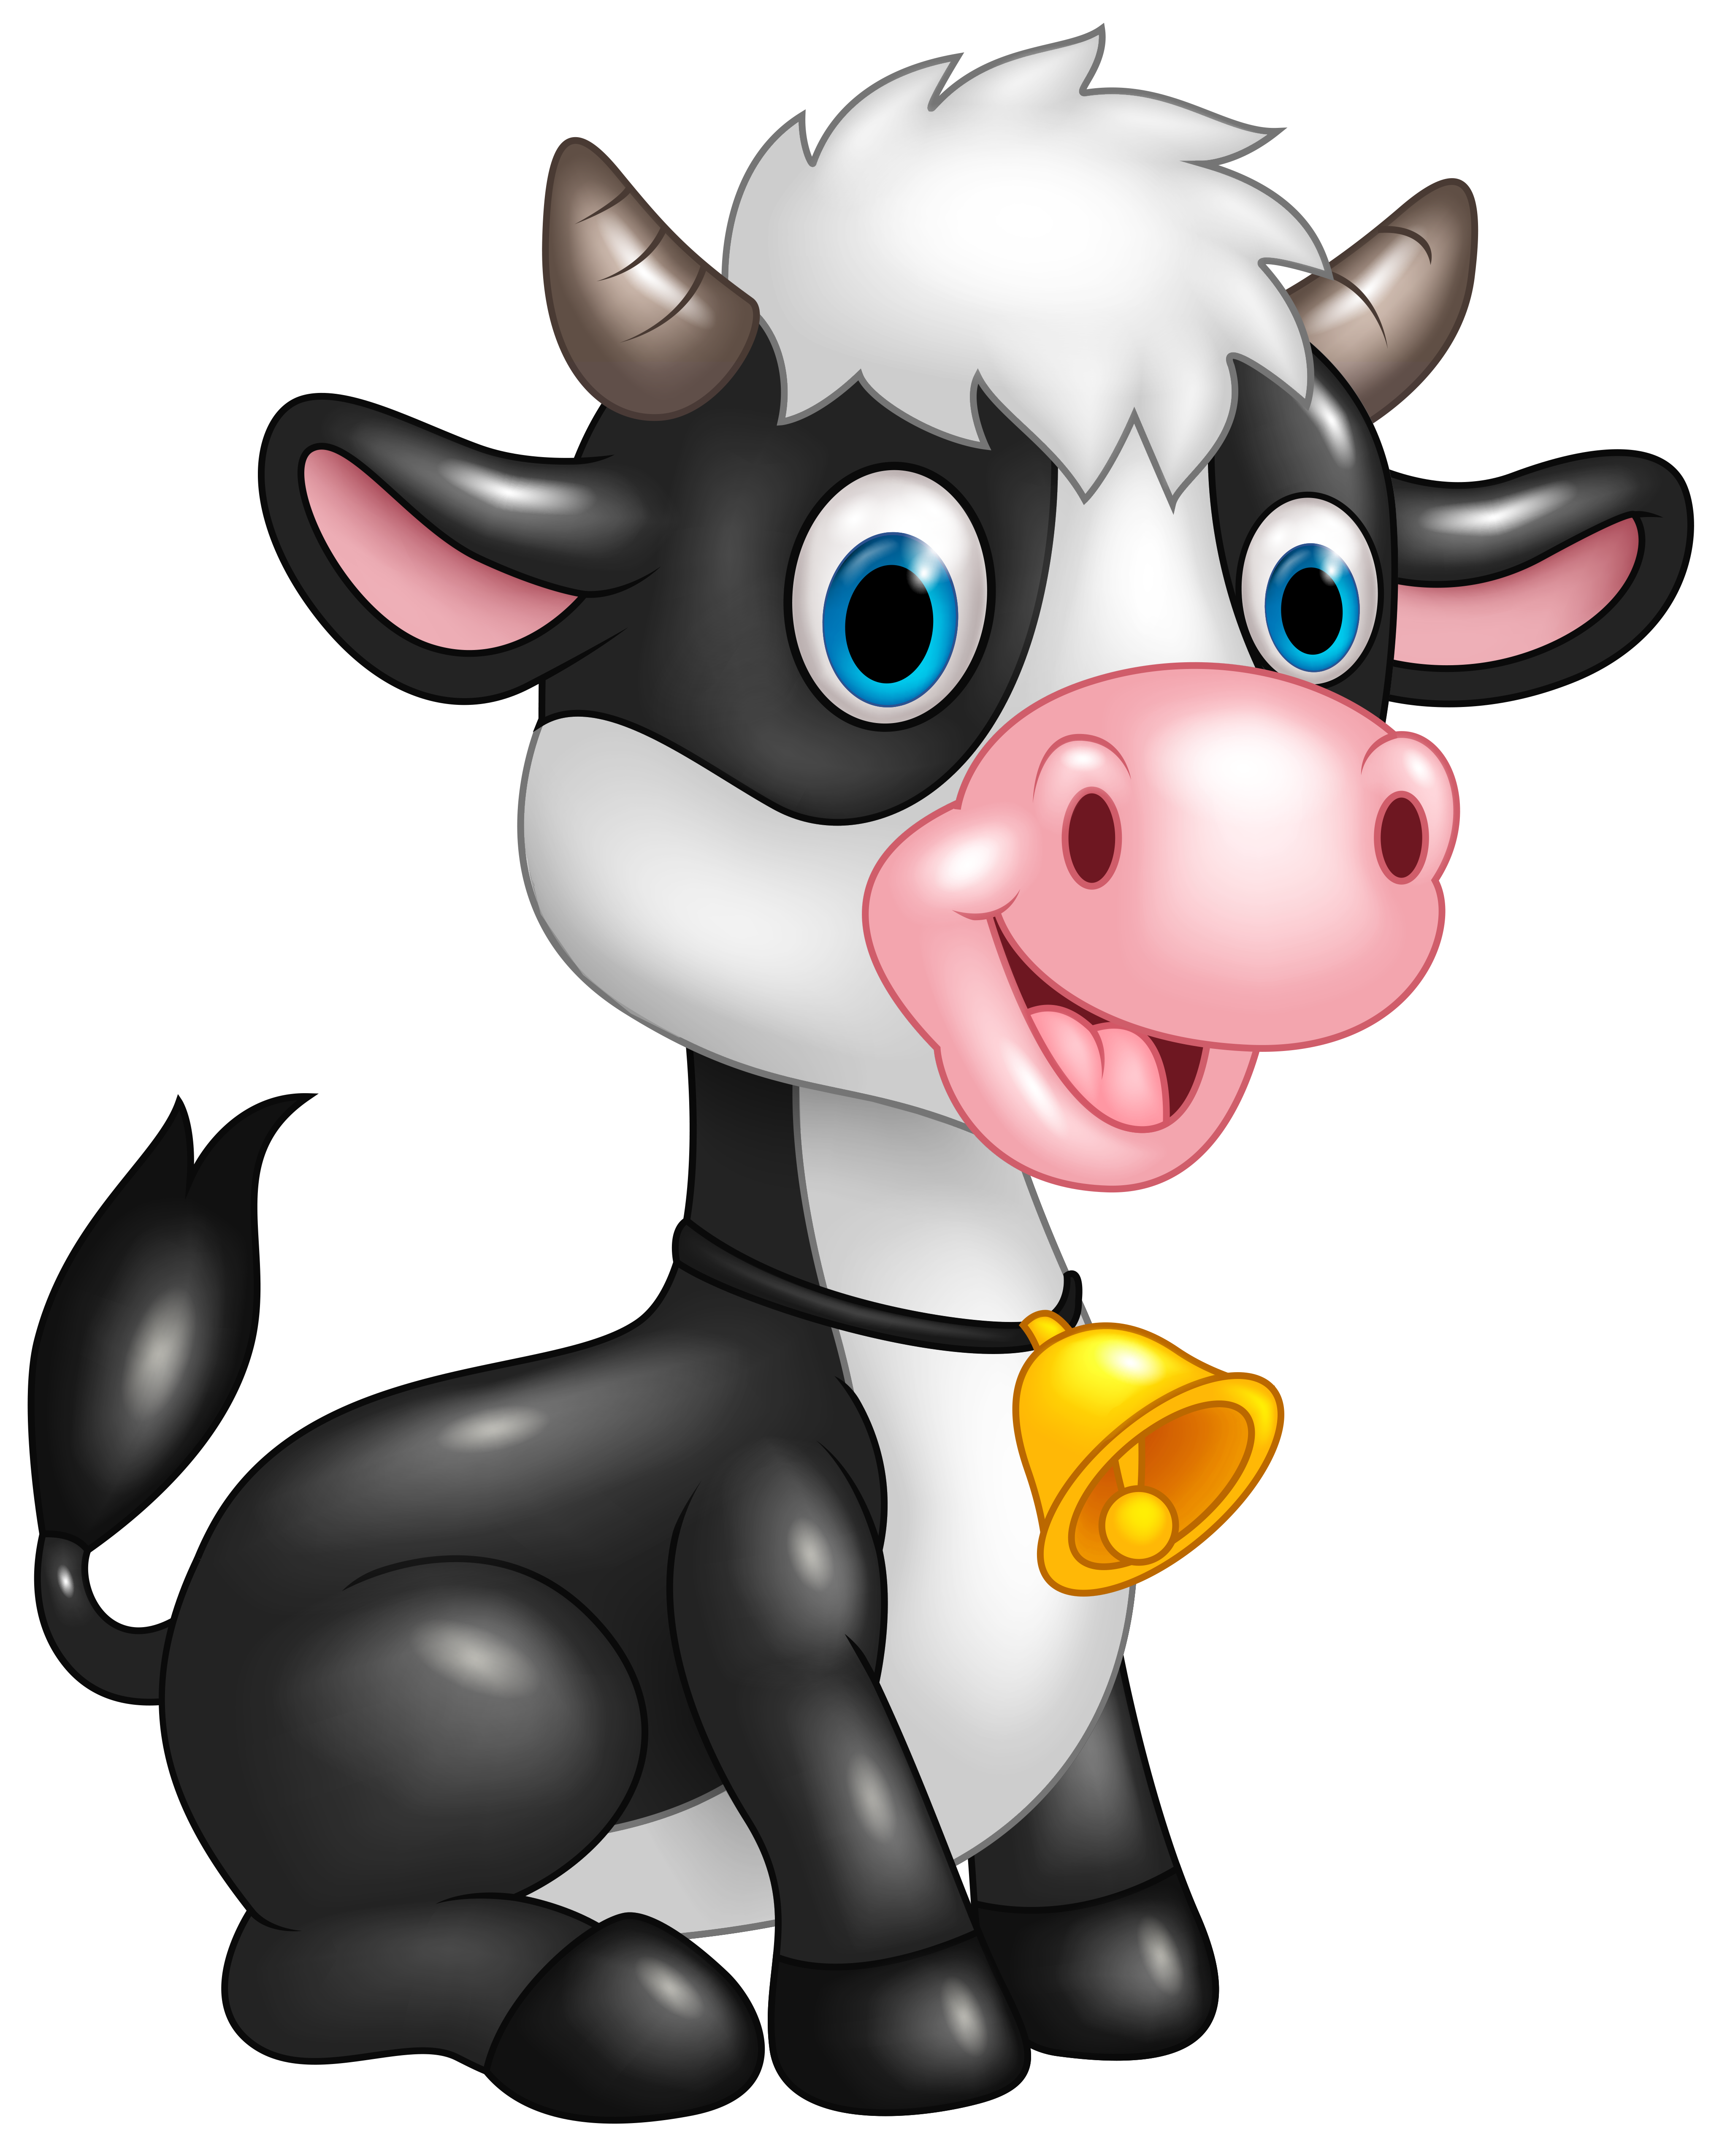 Cute cow cartoon png. Ox clipart caw